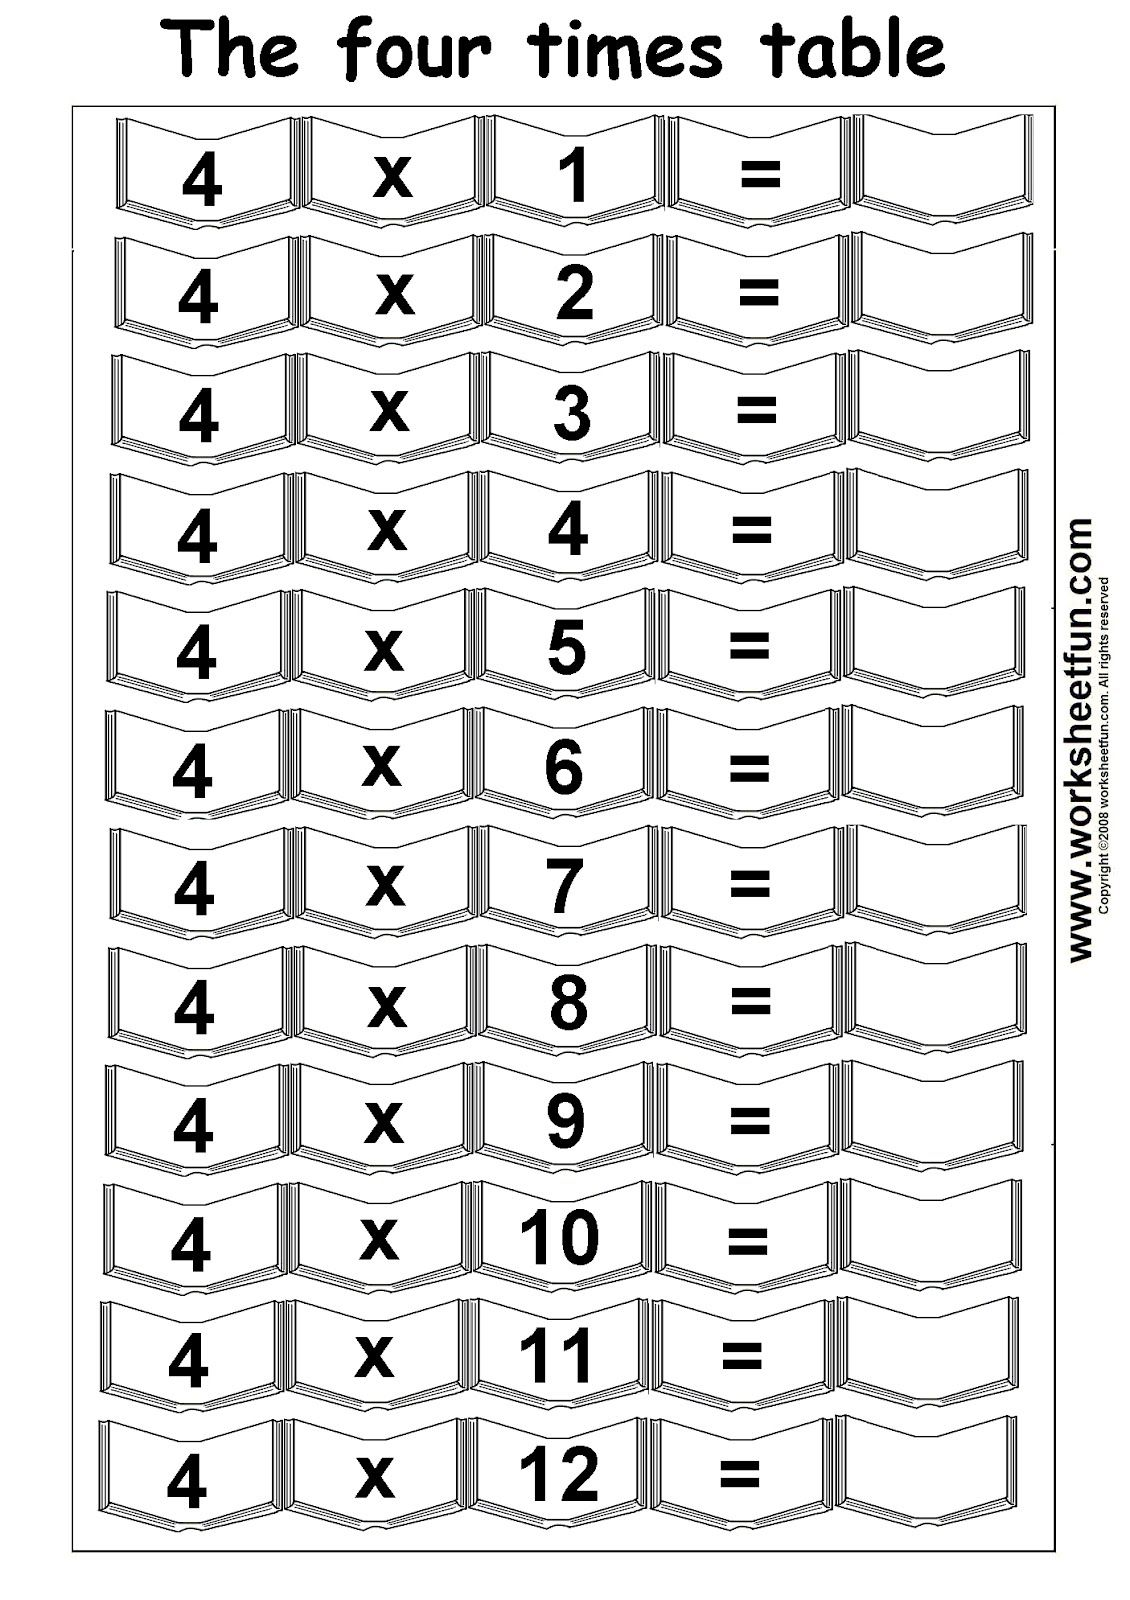 Worksheetfun Free Printable Worksheets 3rd Grade Math Worksheets Printable Math Worksheets Times Tables Worksheets